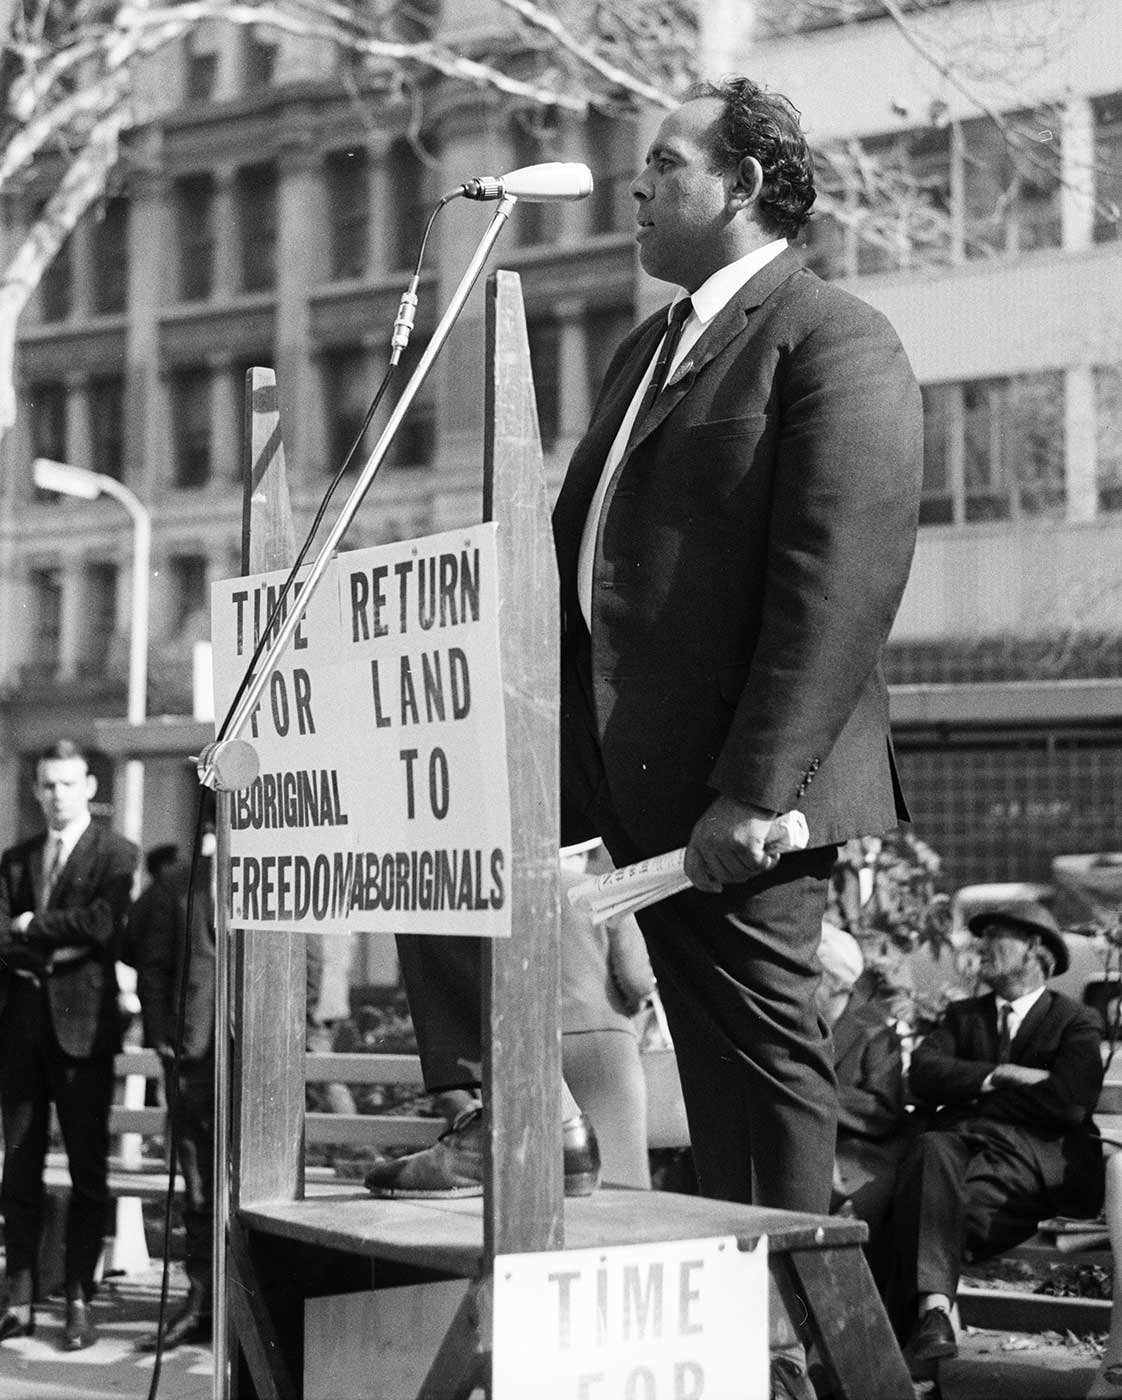 The placard refers to land. The speaker is Aboriginal trade unionist, Ray Peckham.